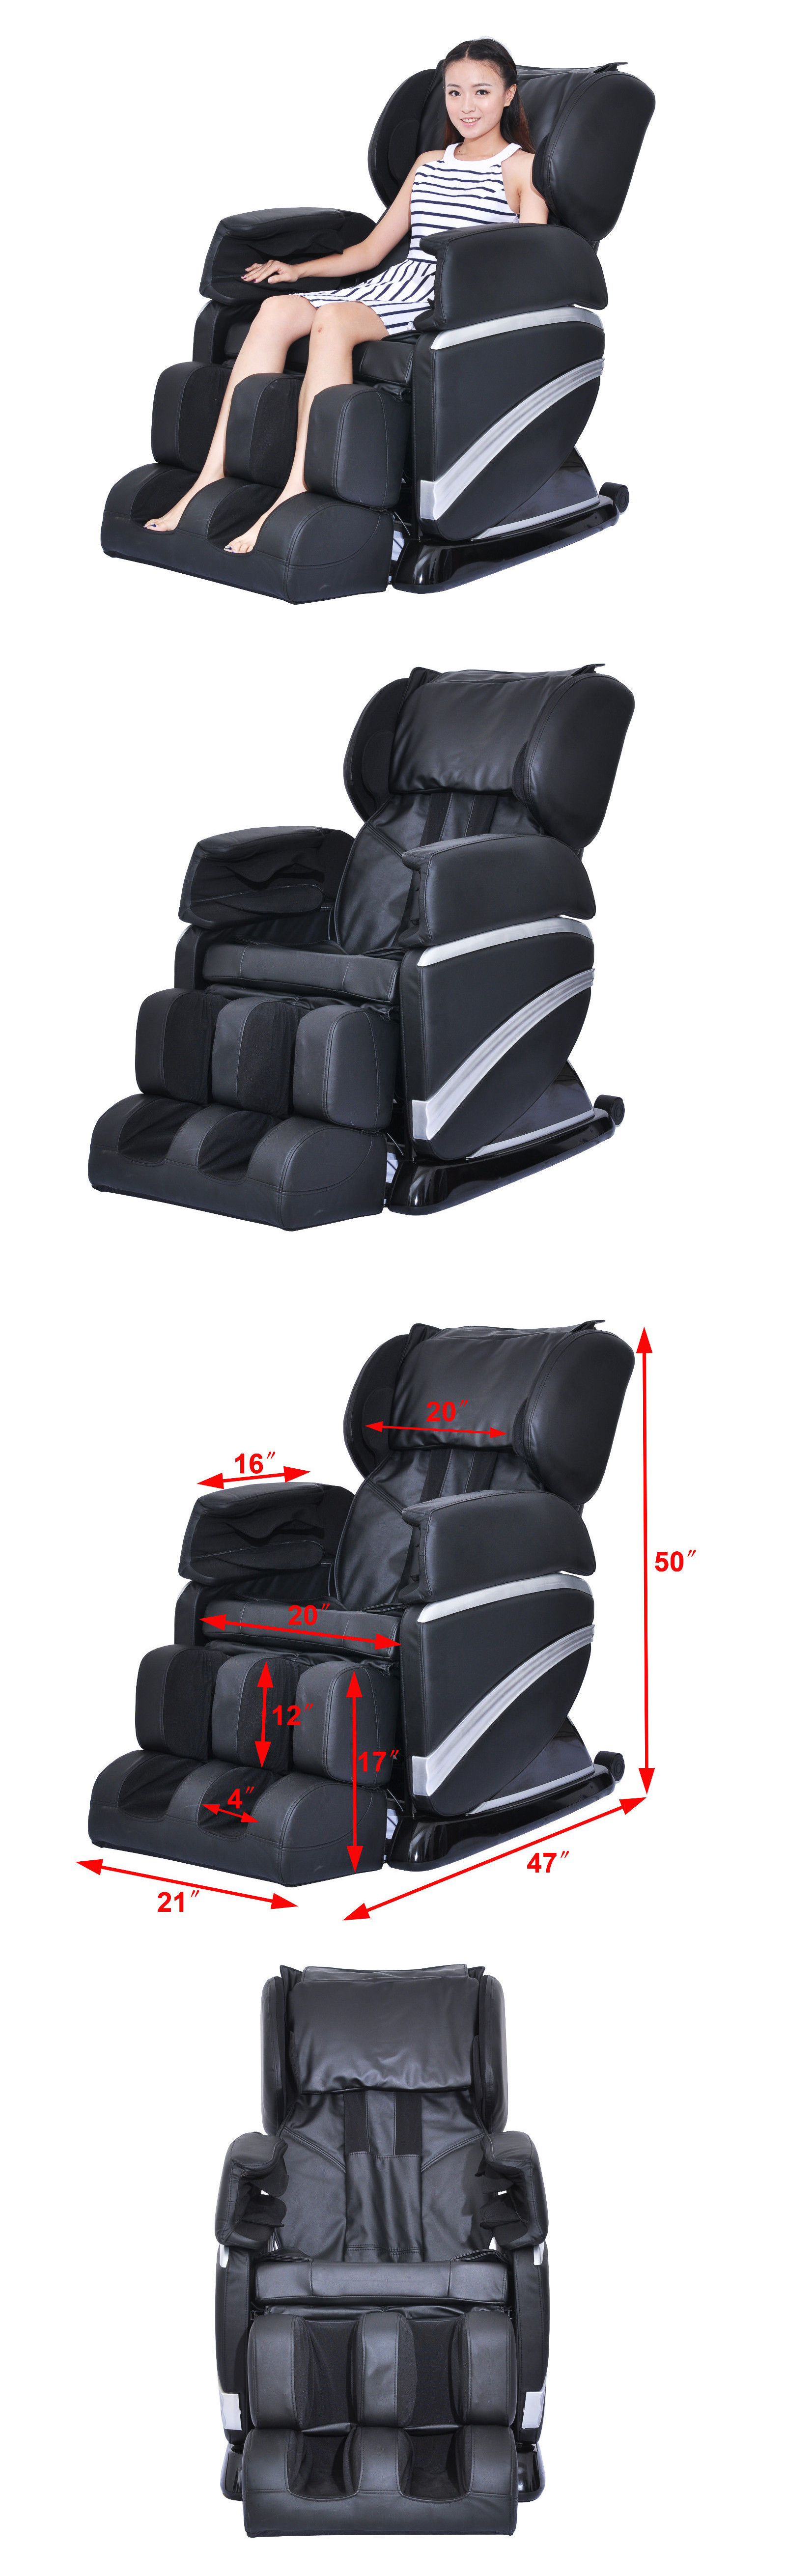 Electric Massage Chairs M bo Massage Electric Recliner Chair